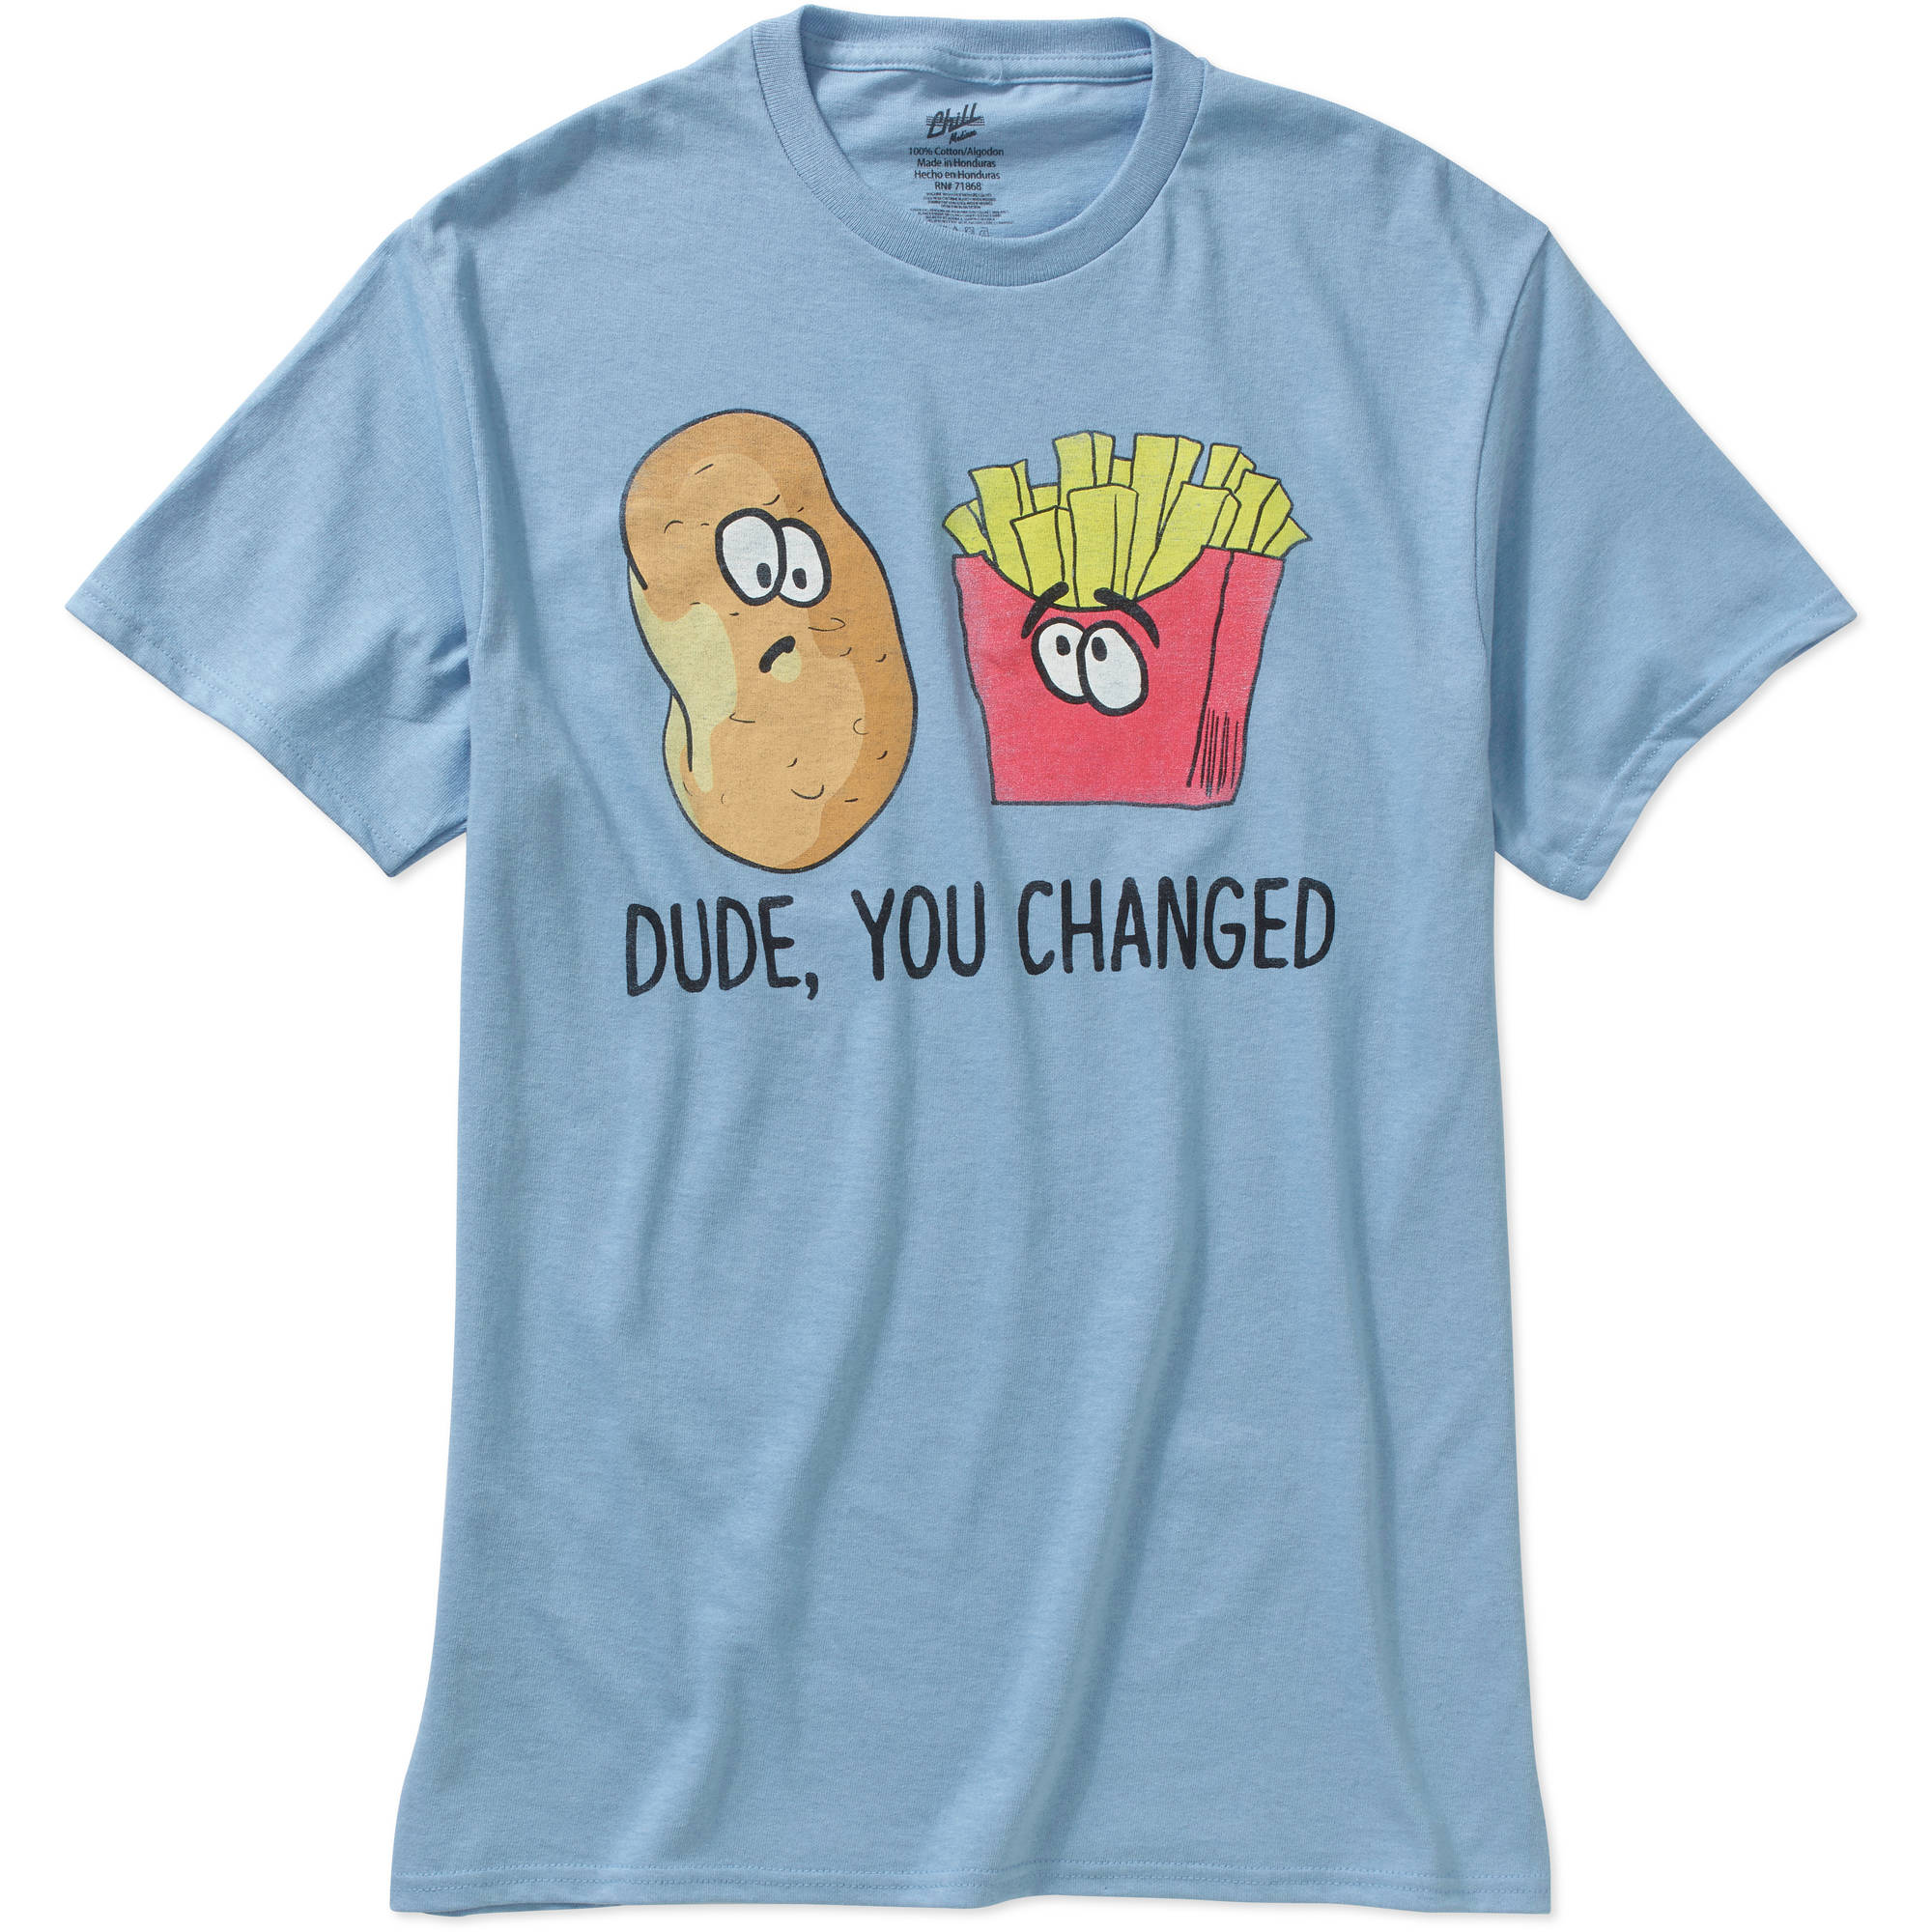 Dude, You Changed Men's Graphic Tee